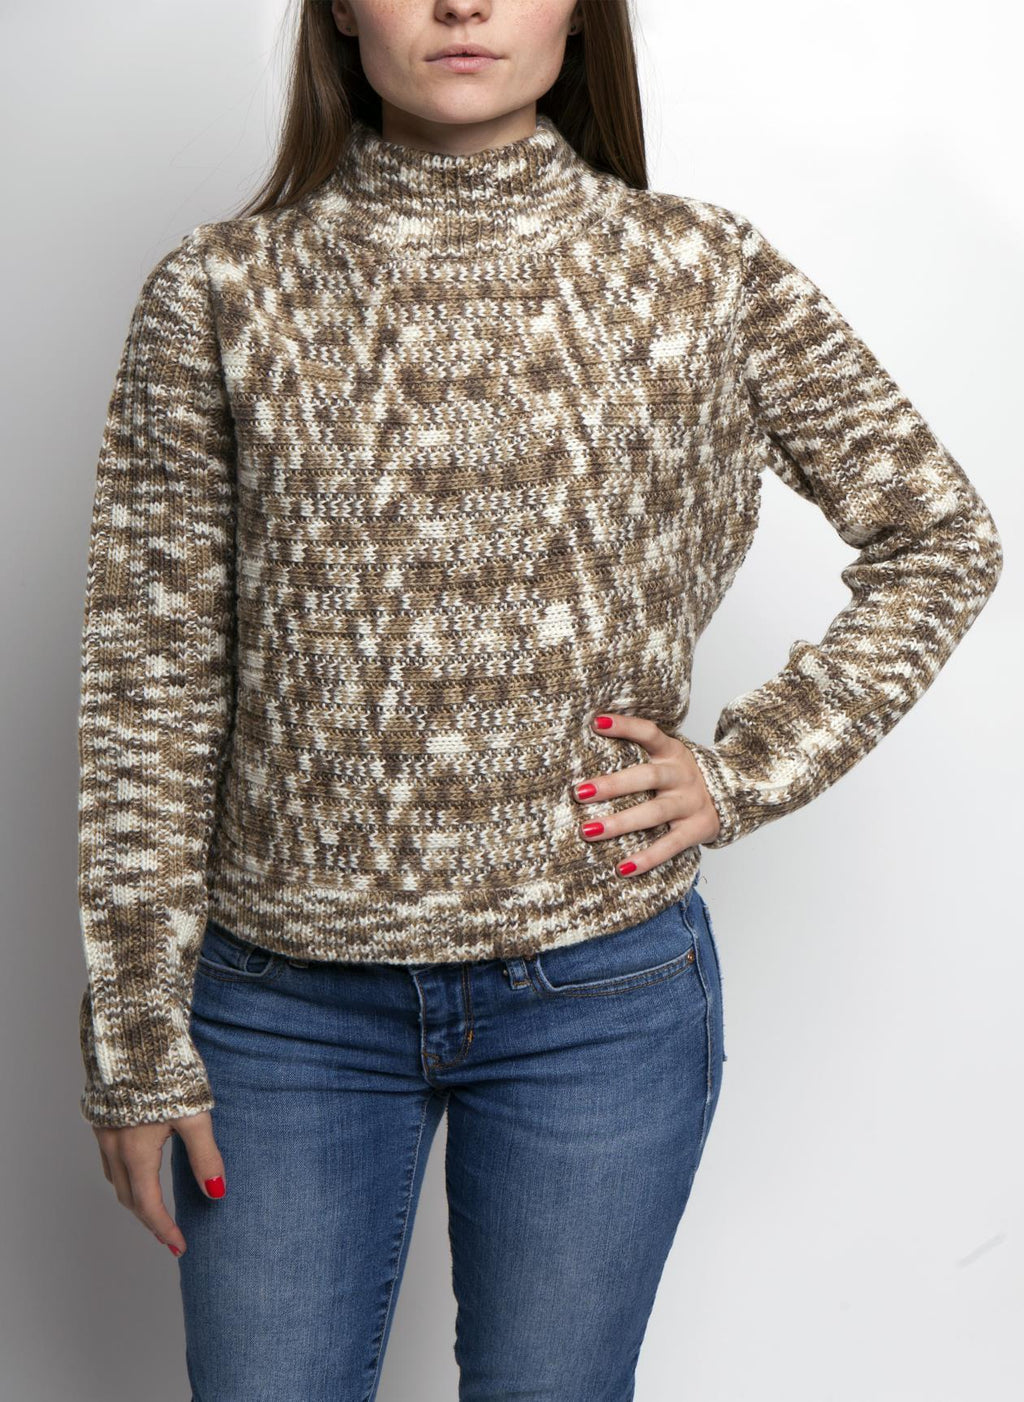 ELLA MOCK SWEATER IN MUSHROOM COLOR ON FEMALE MODEL